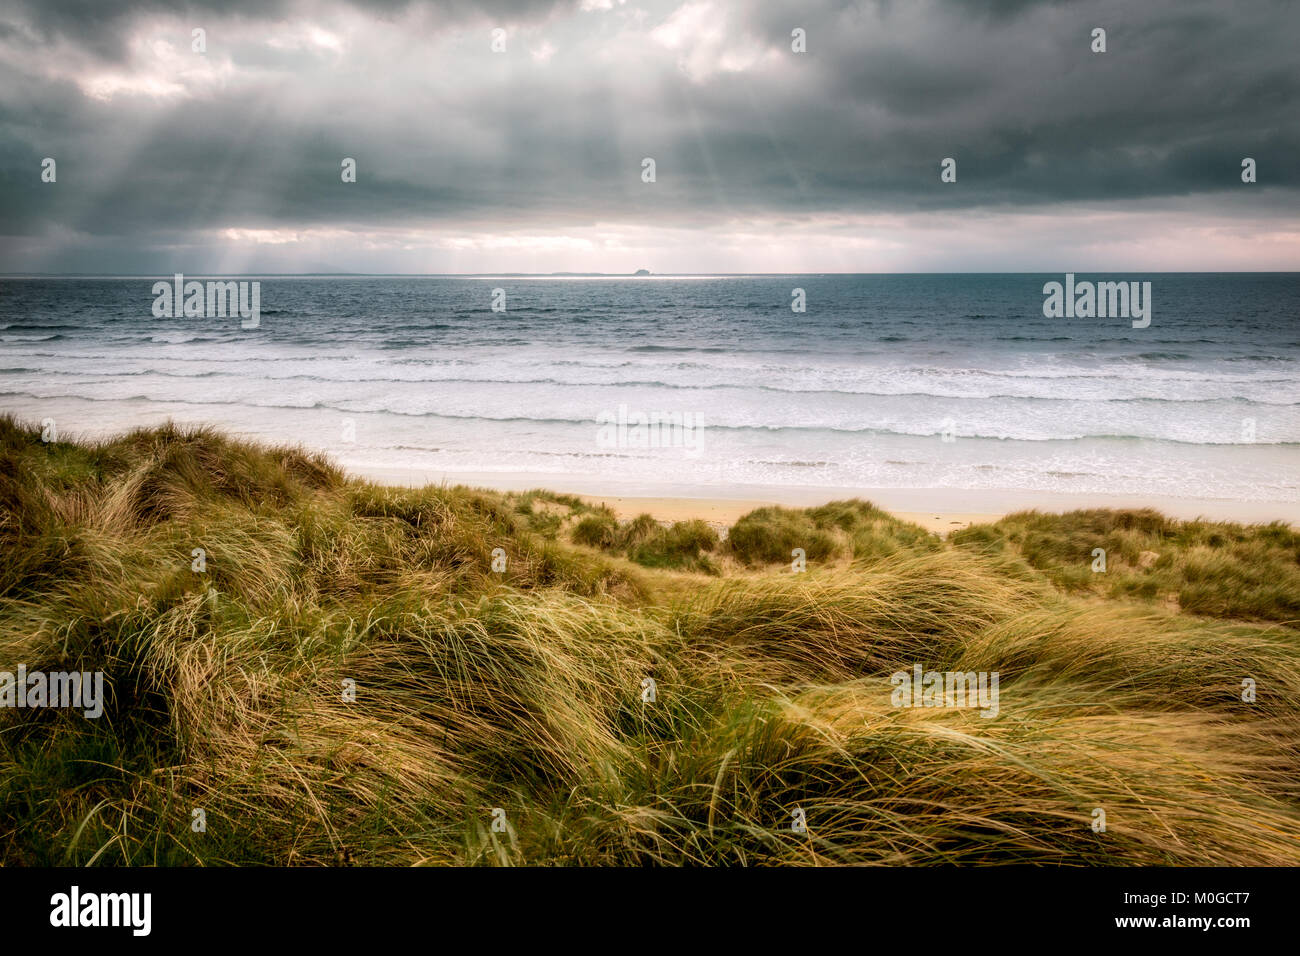 Windy weather on top of a sand dune looking out to a choppy coast on a sandy beach - Stock Image